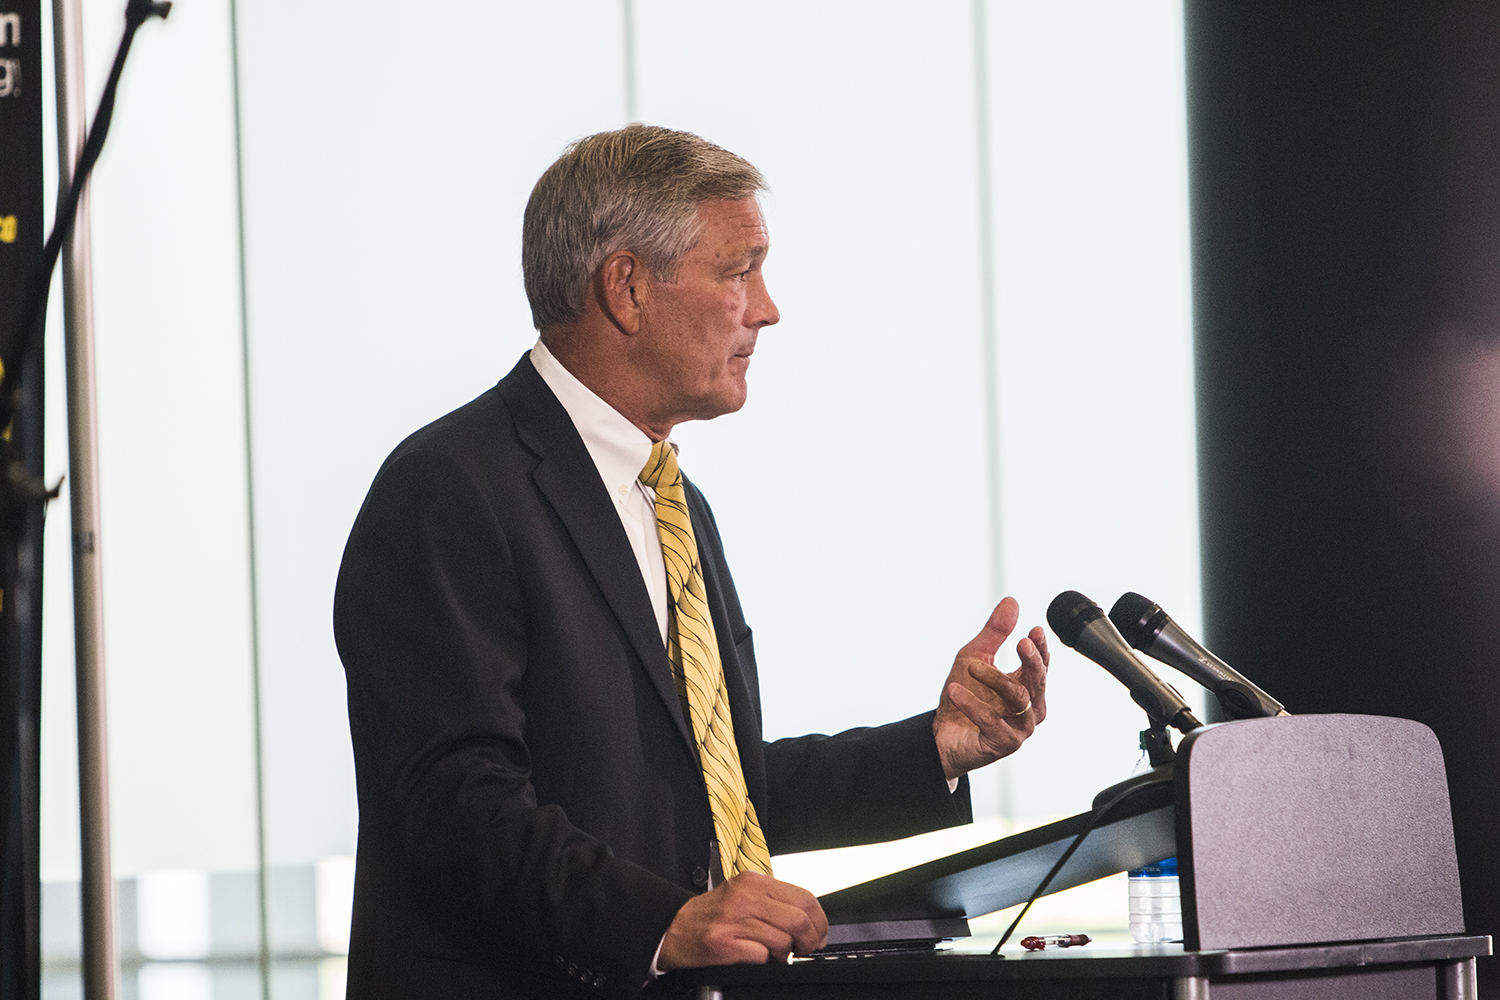 Iowa football head coach Kirk Ferentz speaks at a press conference in Carver-Hawkeye Arena during Iowa Football Media Day on Friday, August 10, 2018. Iowa will open the 2018 football season at home against Northern Illinois on Saturday, September 1.